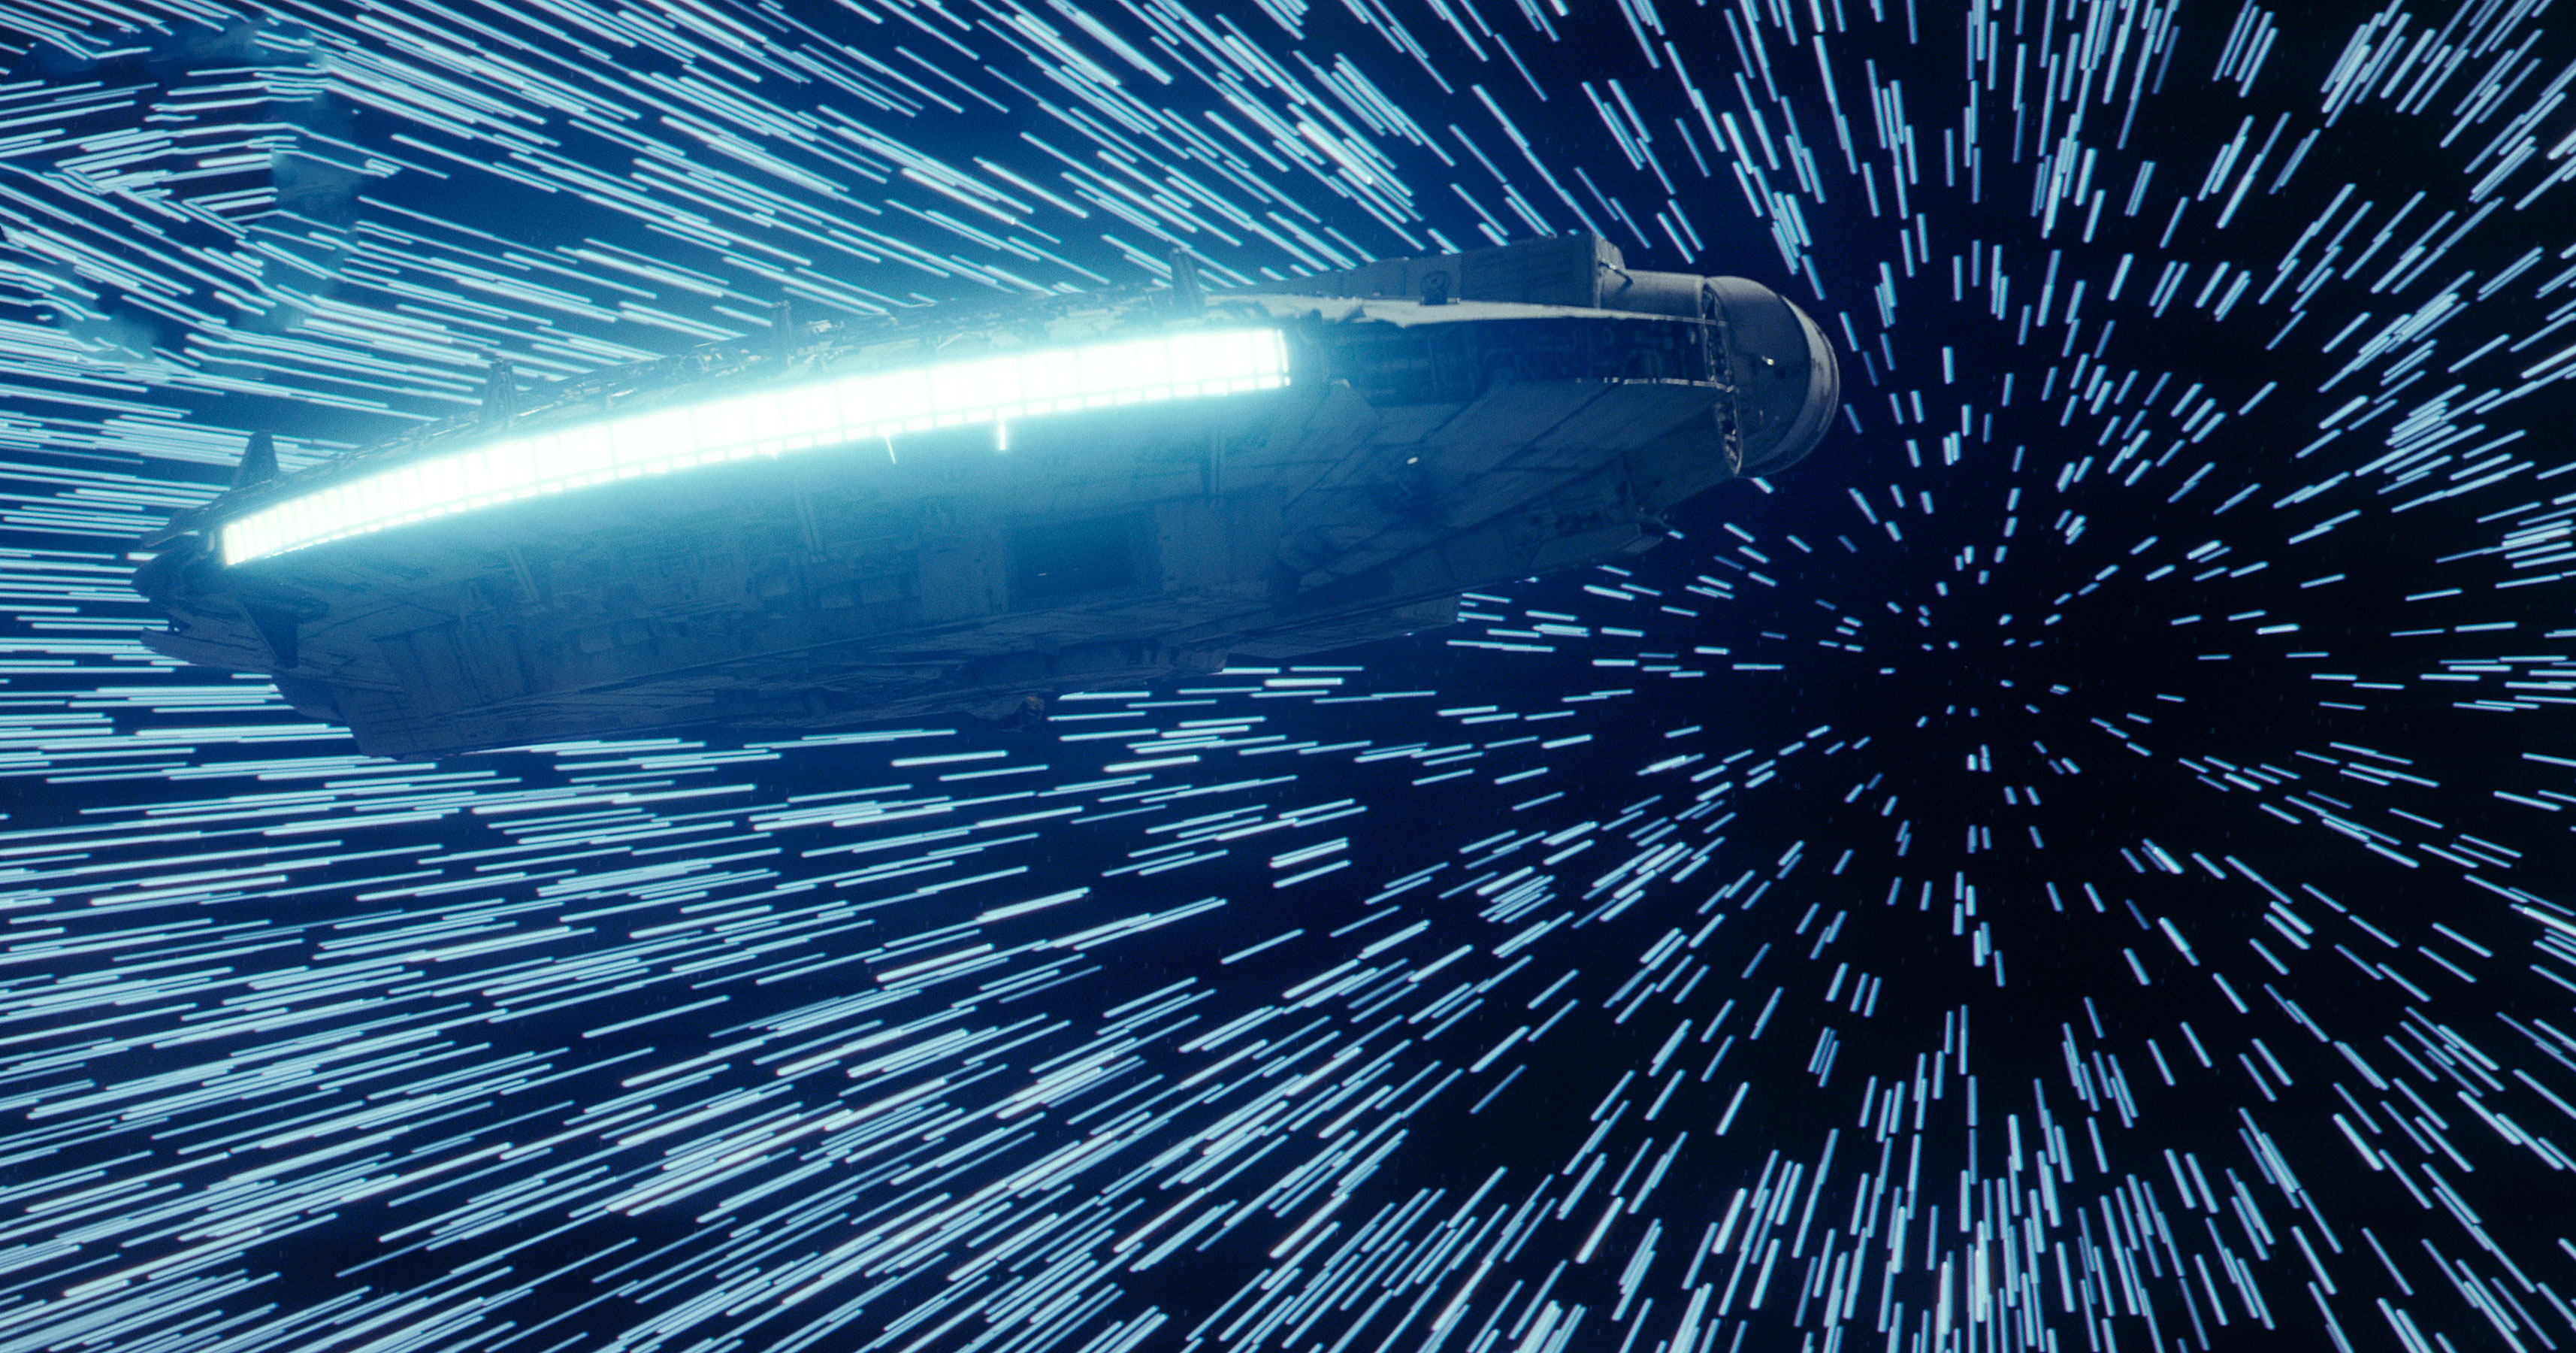 6598235star-wars-the-last-jedi-millennium-falcon-hitting-lightspeed-35